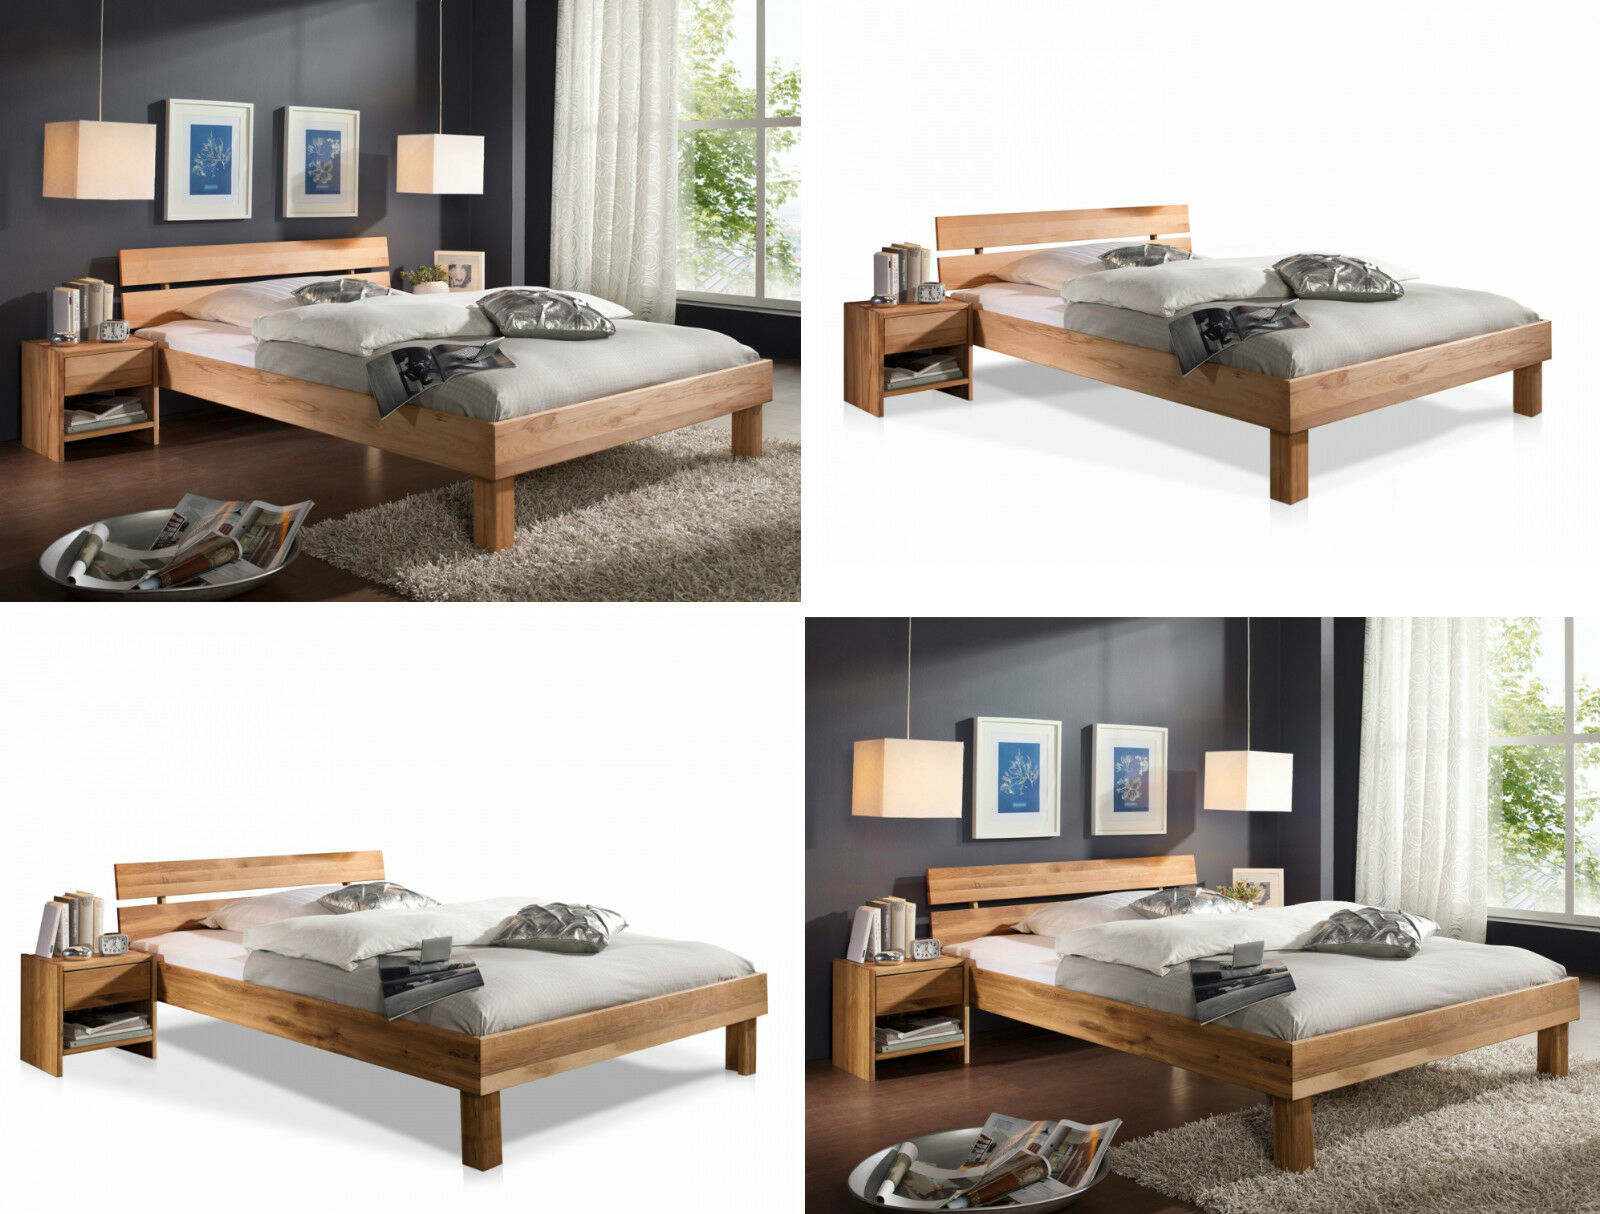 bett mit kopfteil holz massiv holzbett 100 140 160 180 x 200 cm eiche buche chf. Black Bedroom Furniture Sets. Home Design Ideas